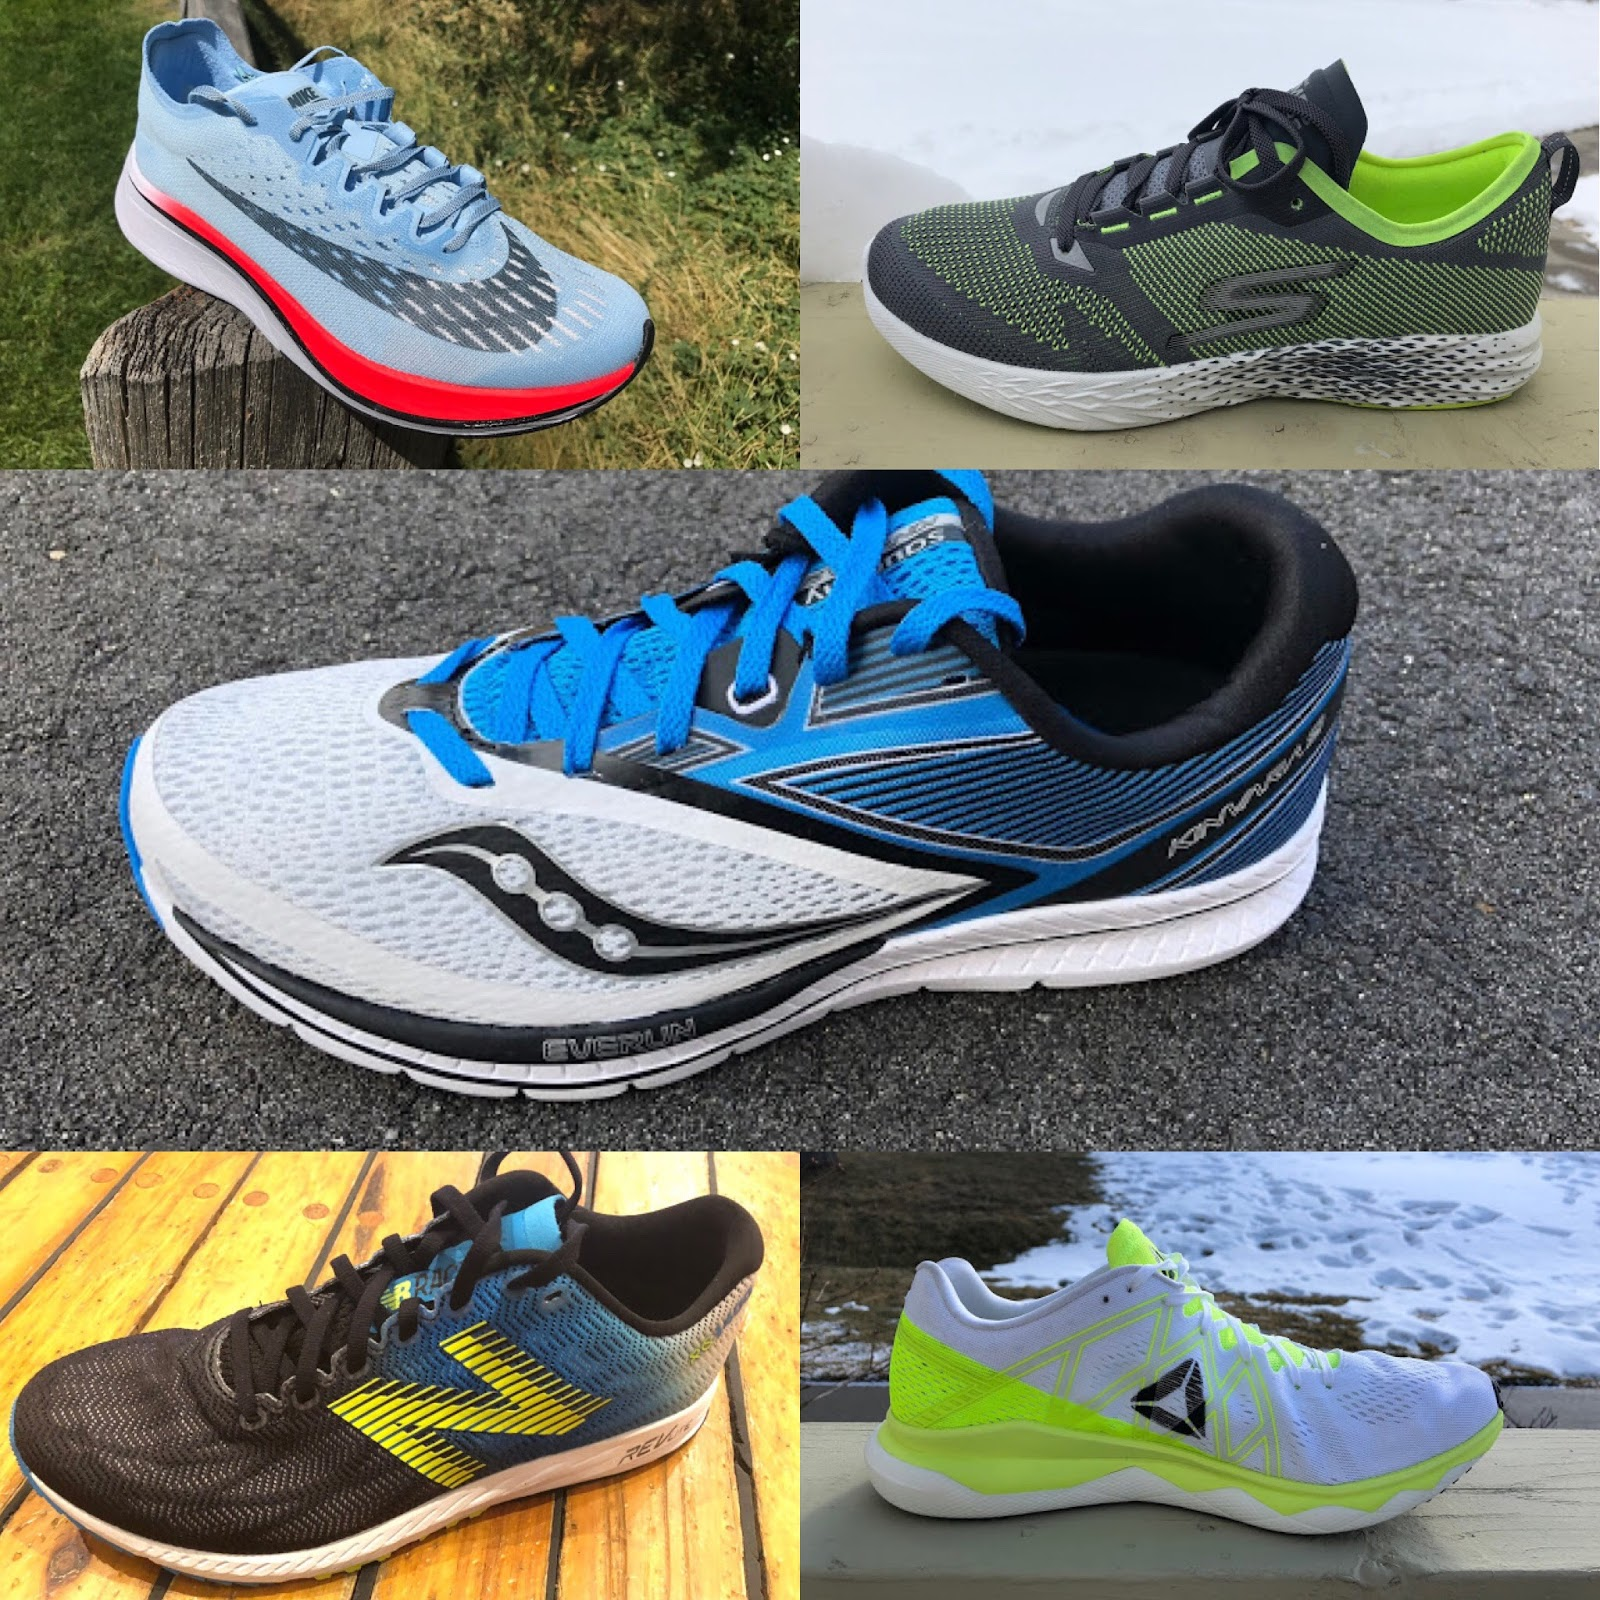 999dee15301d Road Trail Run  The 5 Best Light Performance Trainer   Road Racing ...